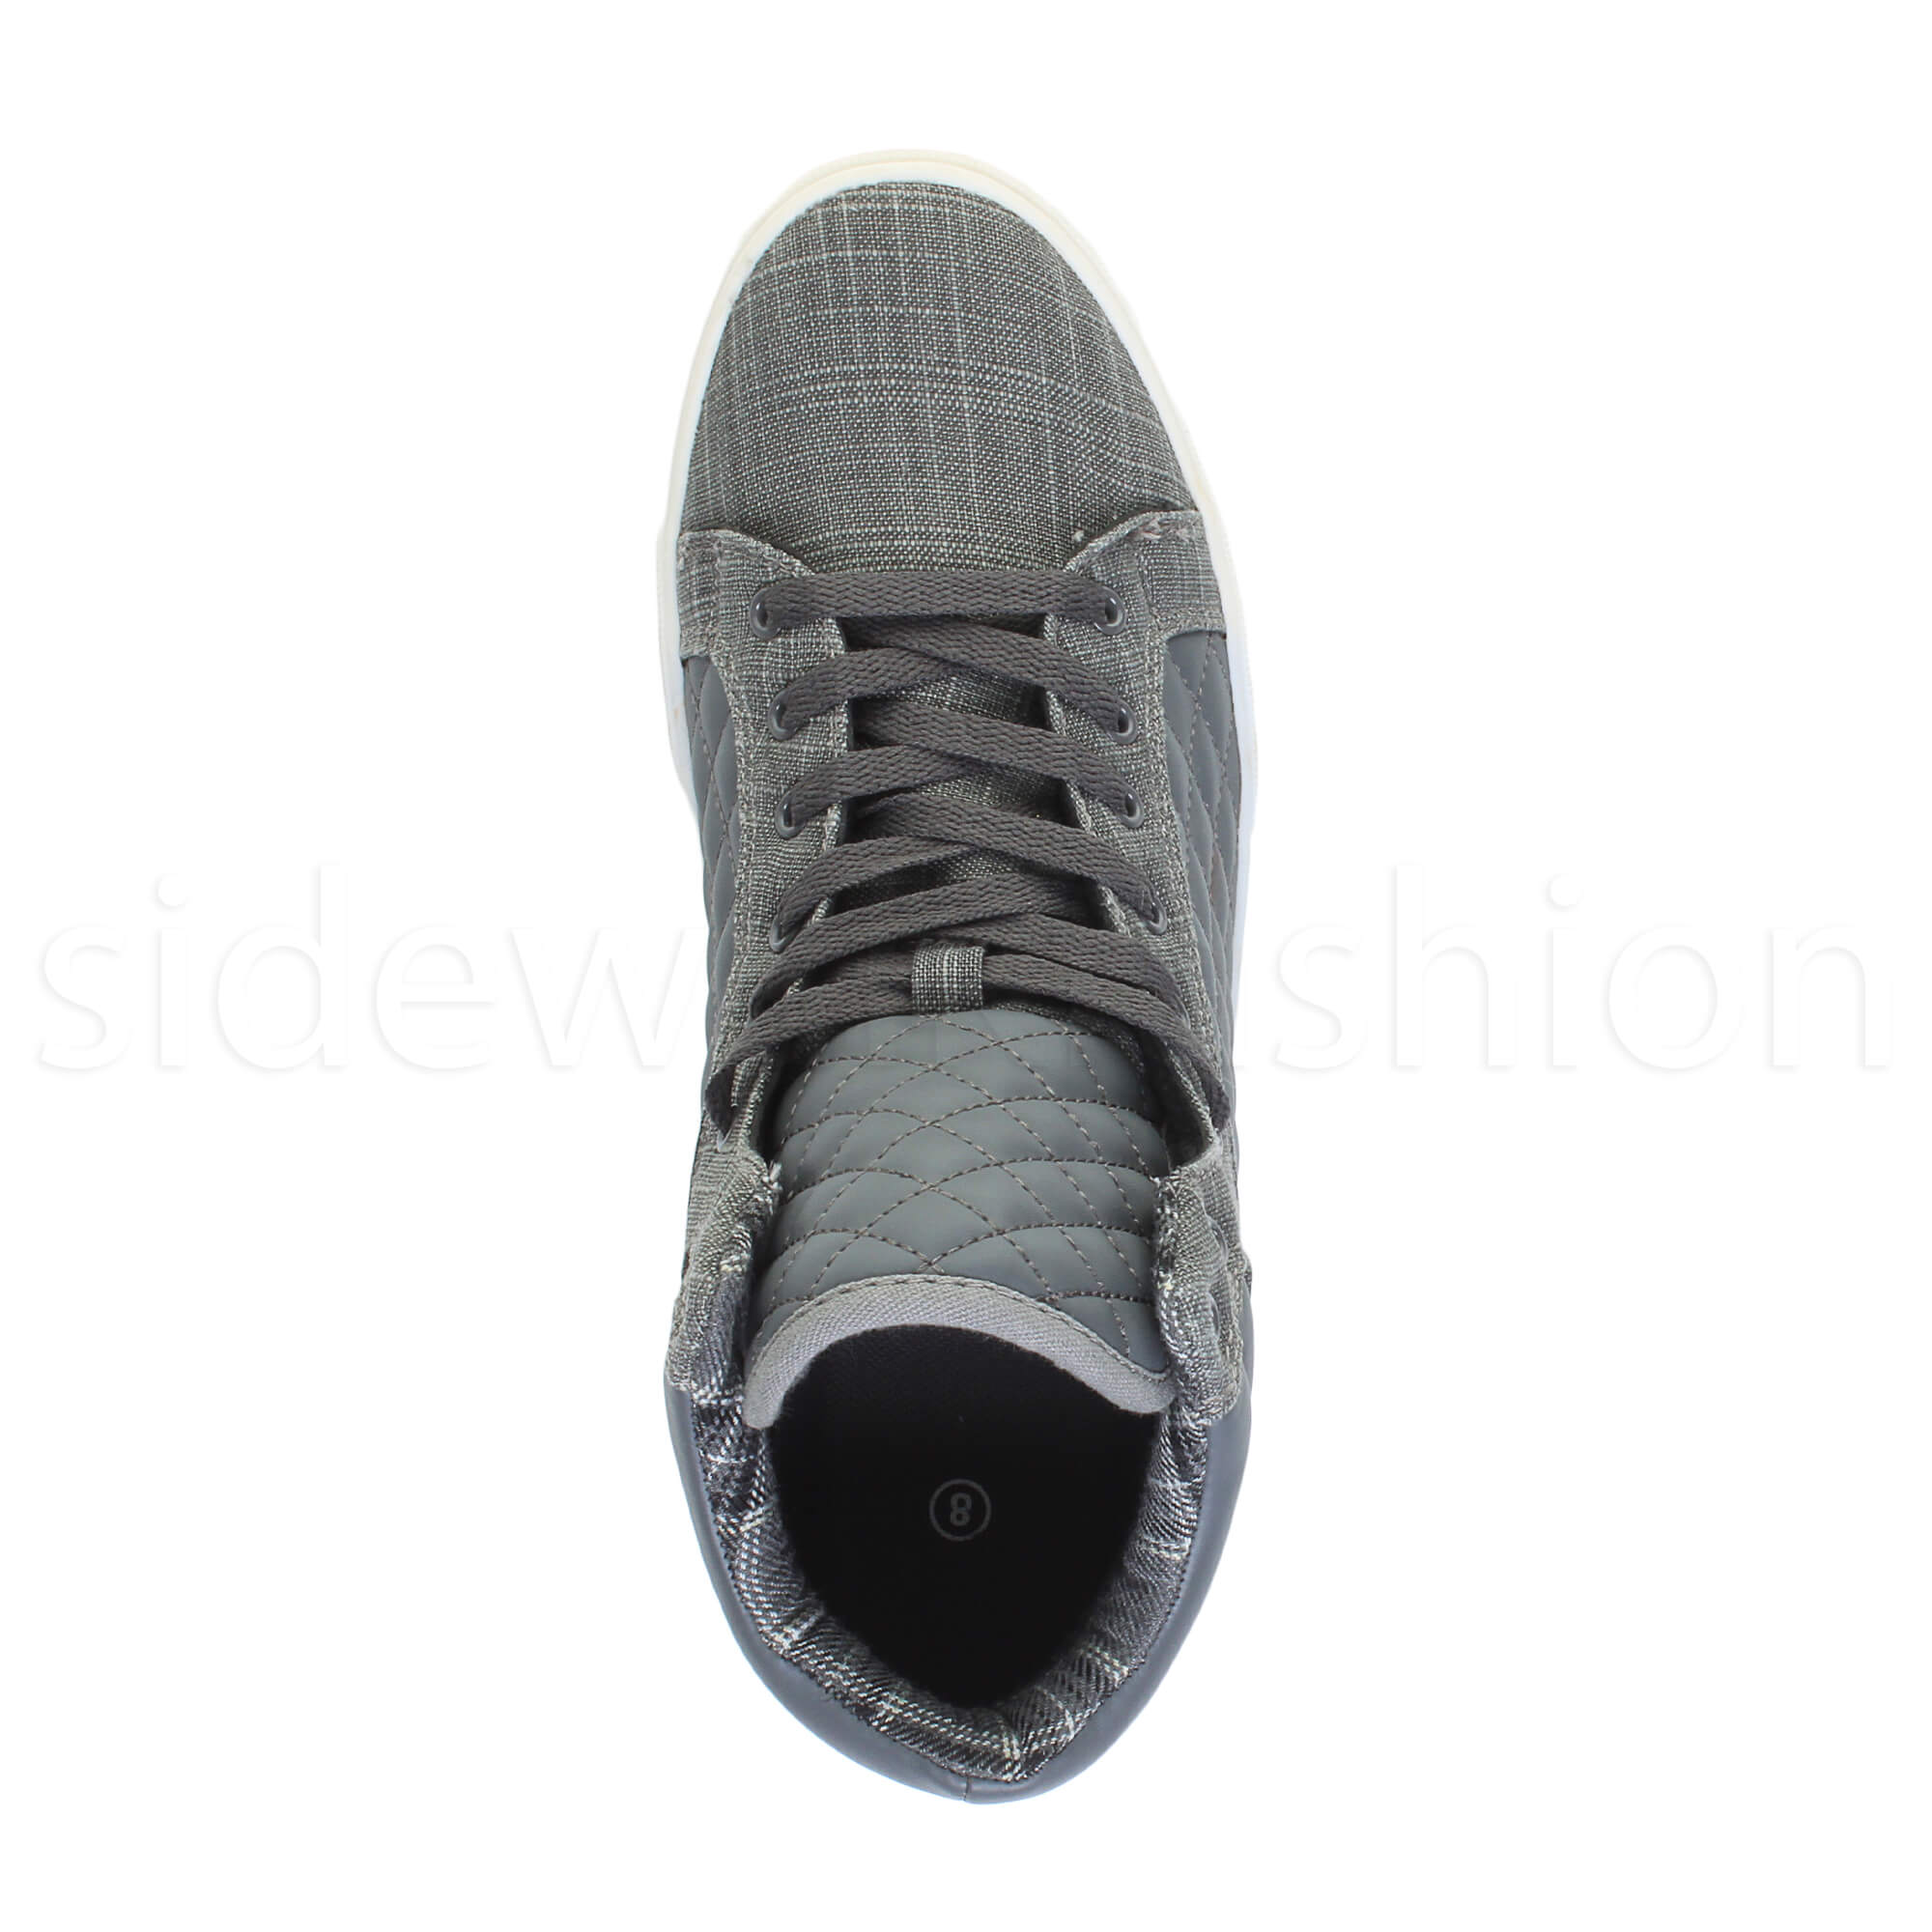 Mens-flat-lace-up-quilted-casual-hi-high-top-ankle-boots-trainers-sneakers-size thumbnail 13